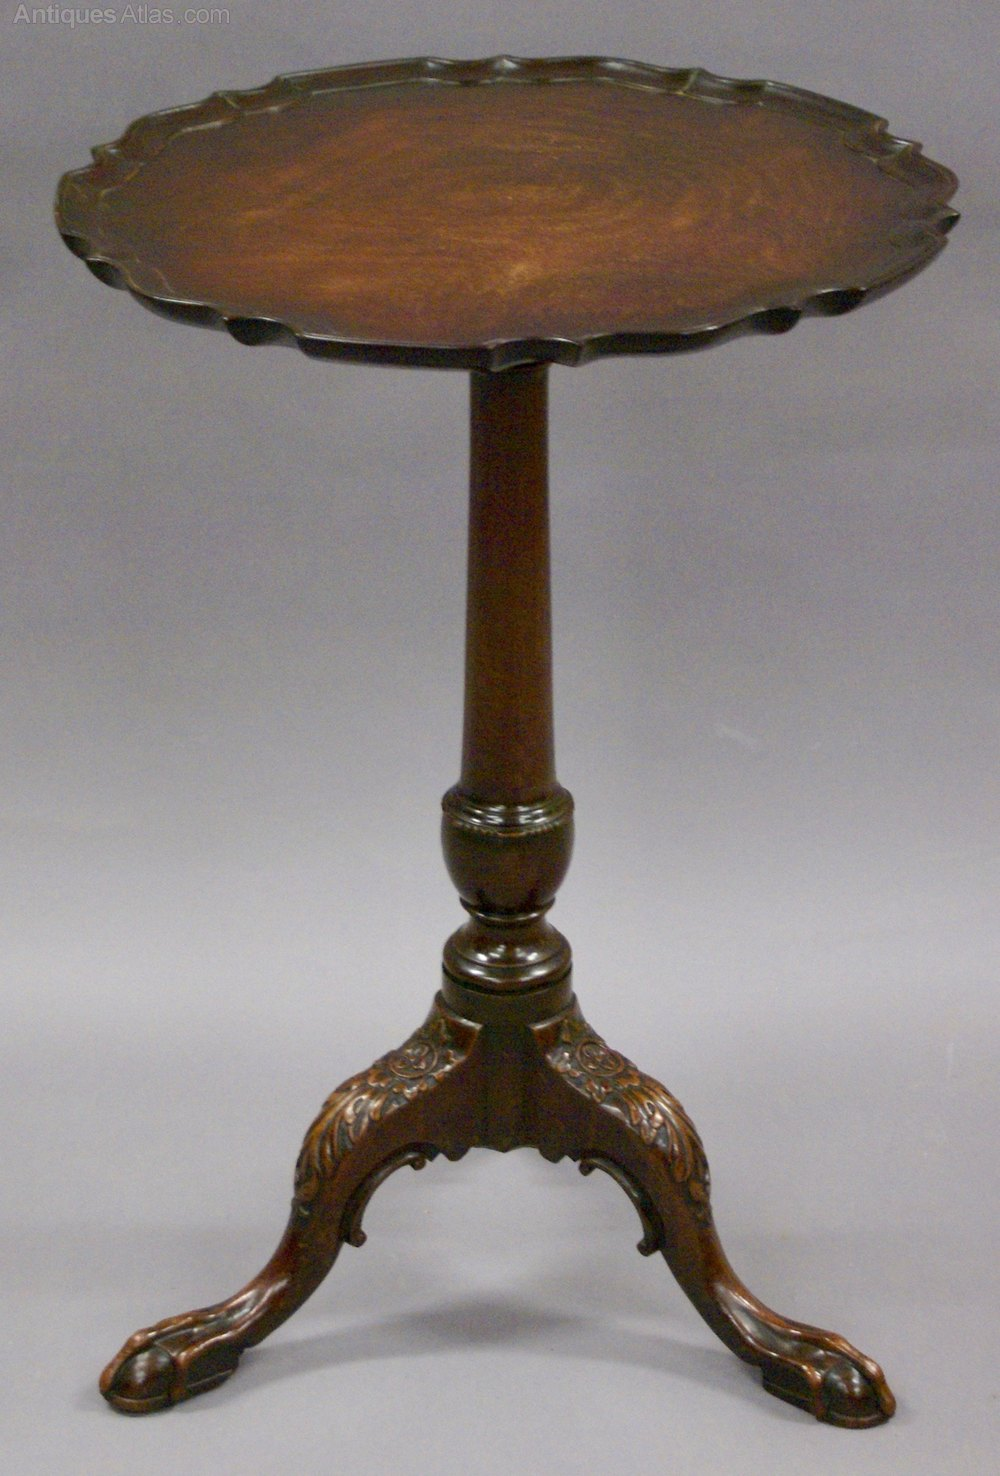 A 19th century carved piecrust tripod table or ke for Table ke design